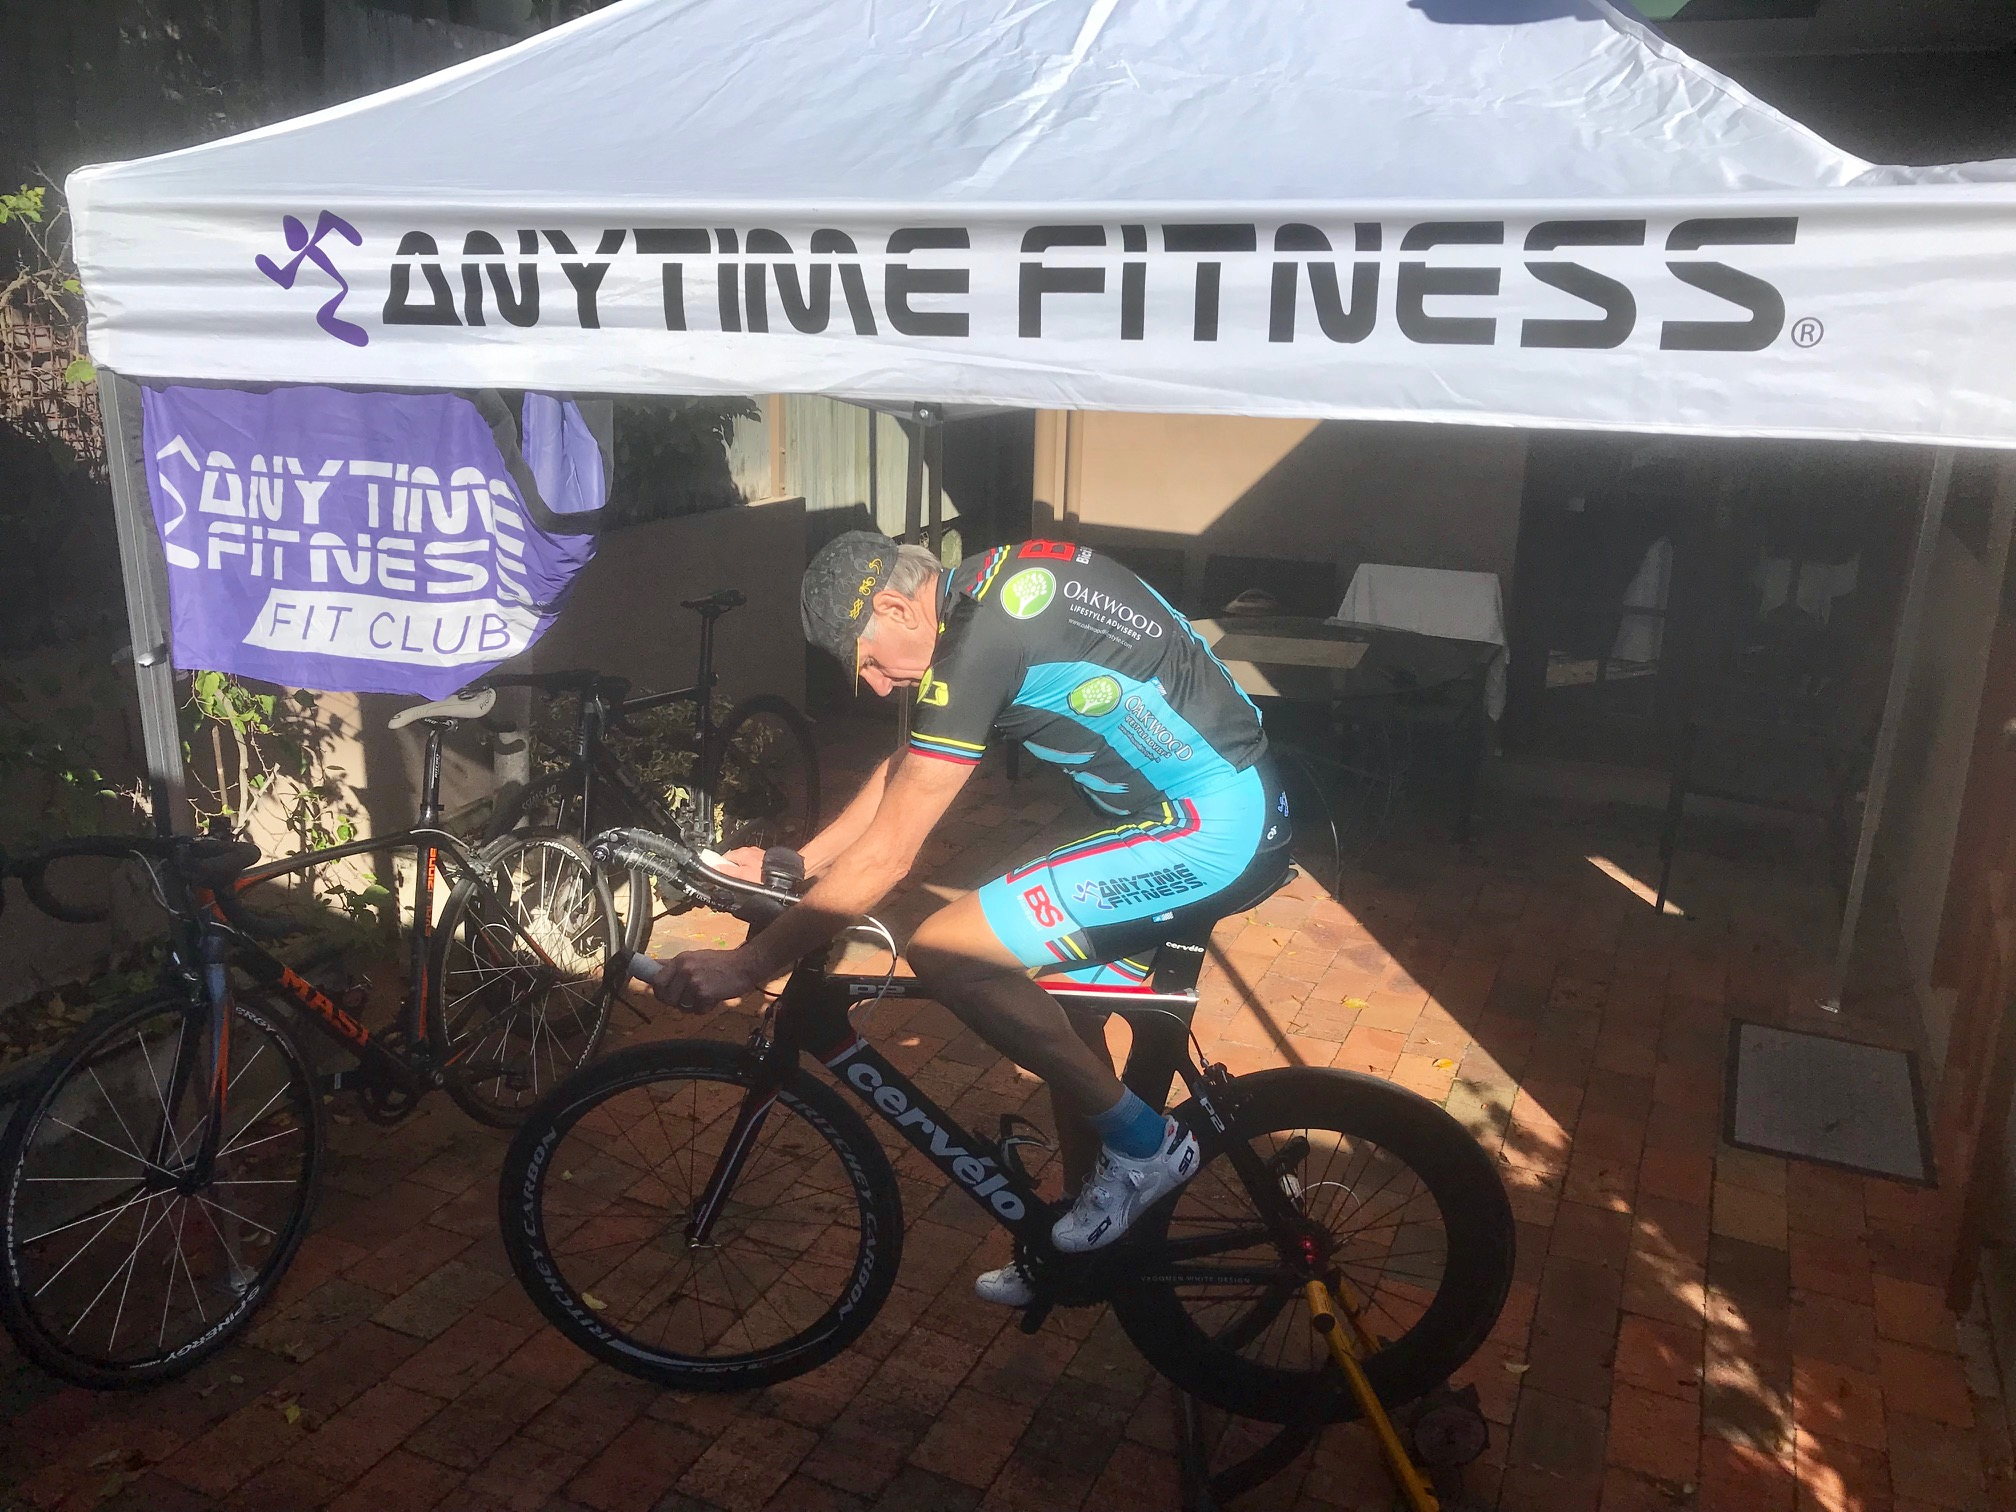 The new Anytime Fitness gazebo will feature at the Metropolitian Championships at Penrith Lakes Regatta Centre on Saturday 6 July from 7.30am. Look forward to seeing you there. Full details in the Special Events page of this website.